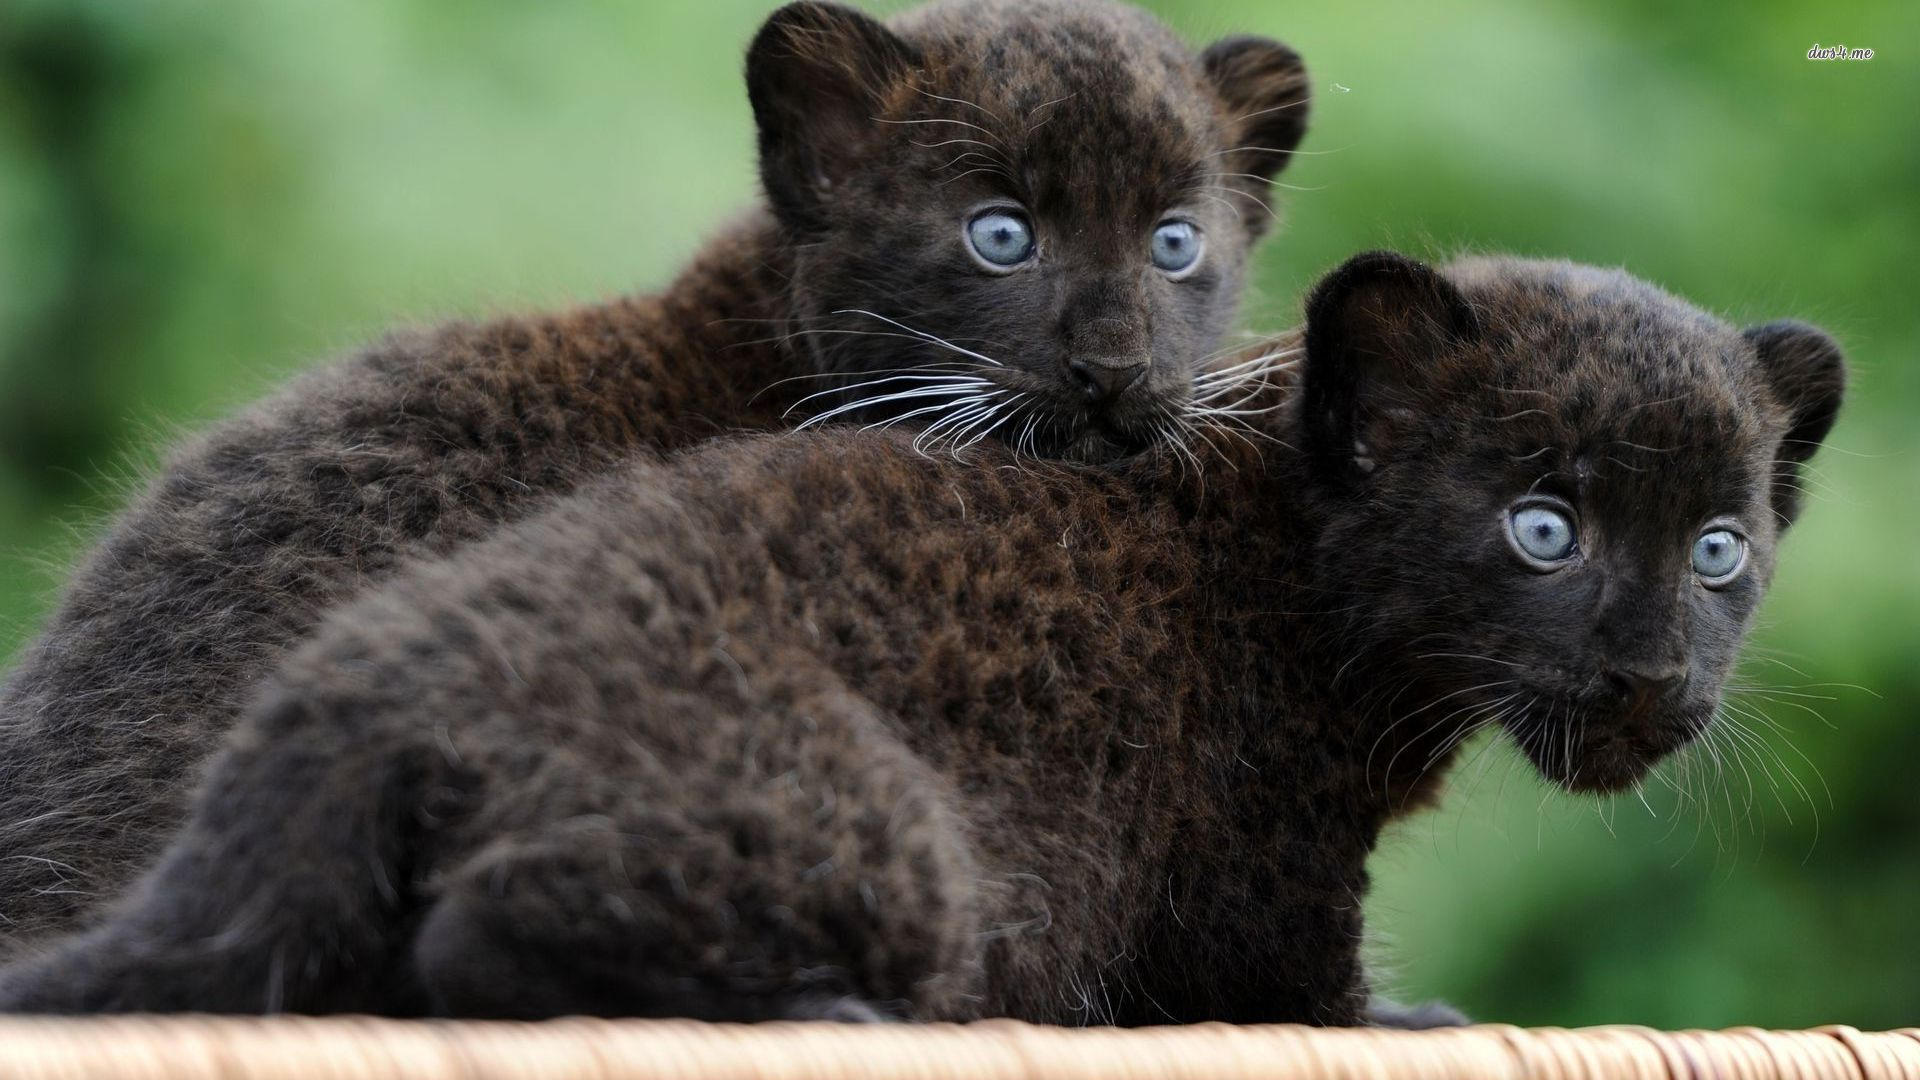 Cute Baby Black Panther Http Ift Tt 2k8xbfj Baby Animals Funny